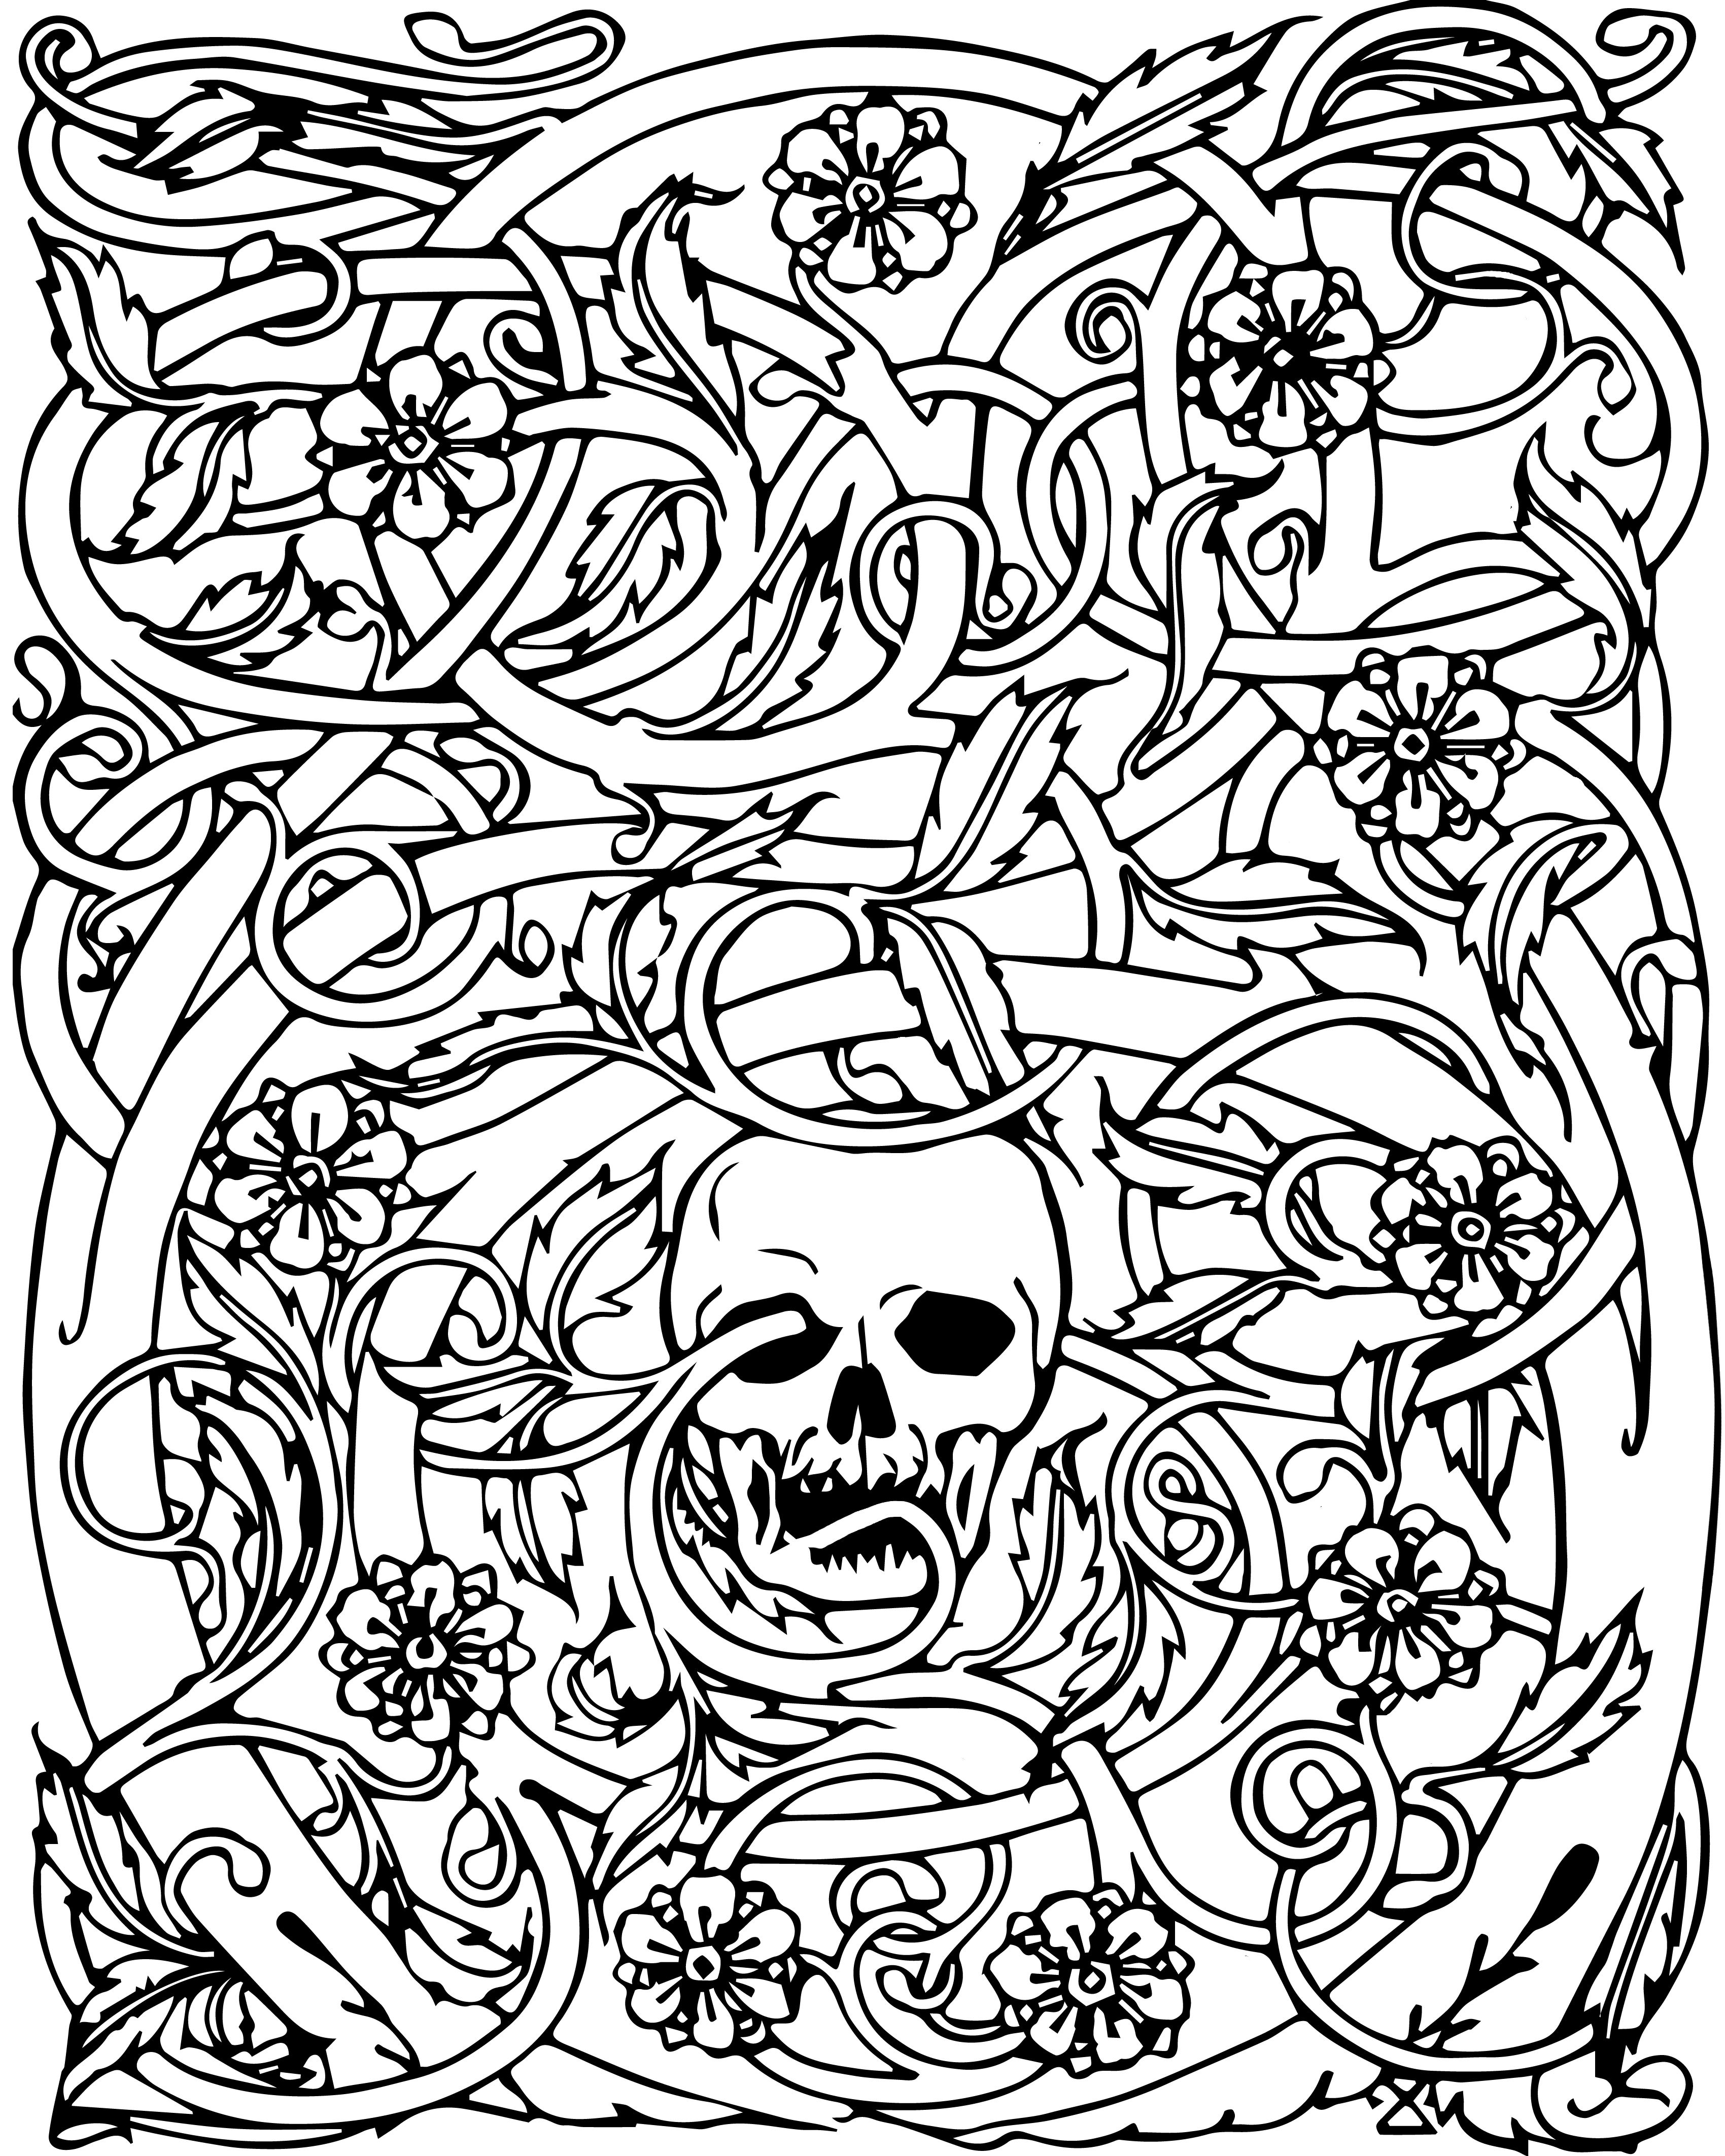 Free Adult Halloween Coloring Pages Skull Coloring Pages